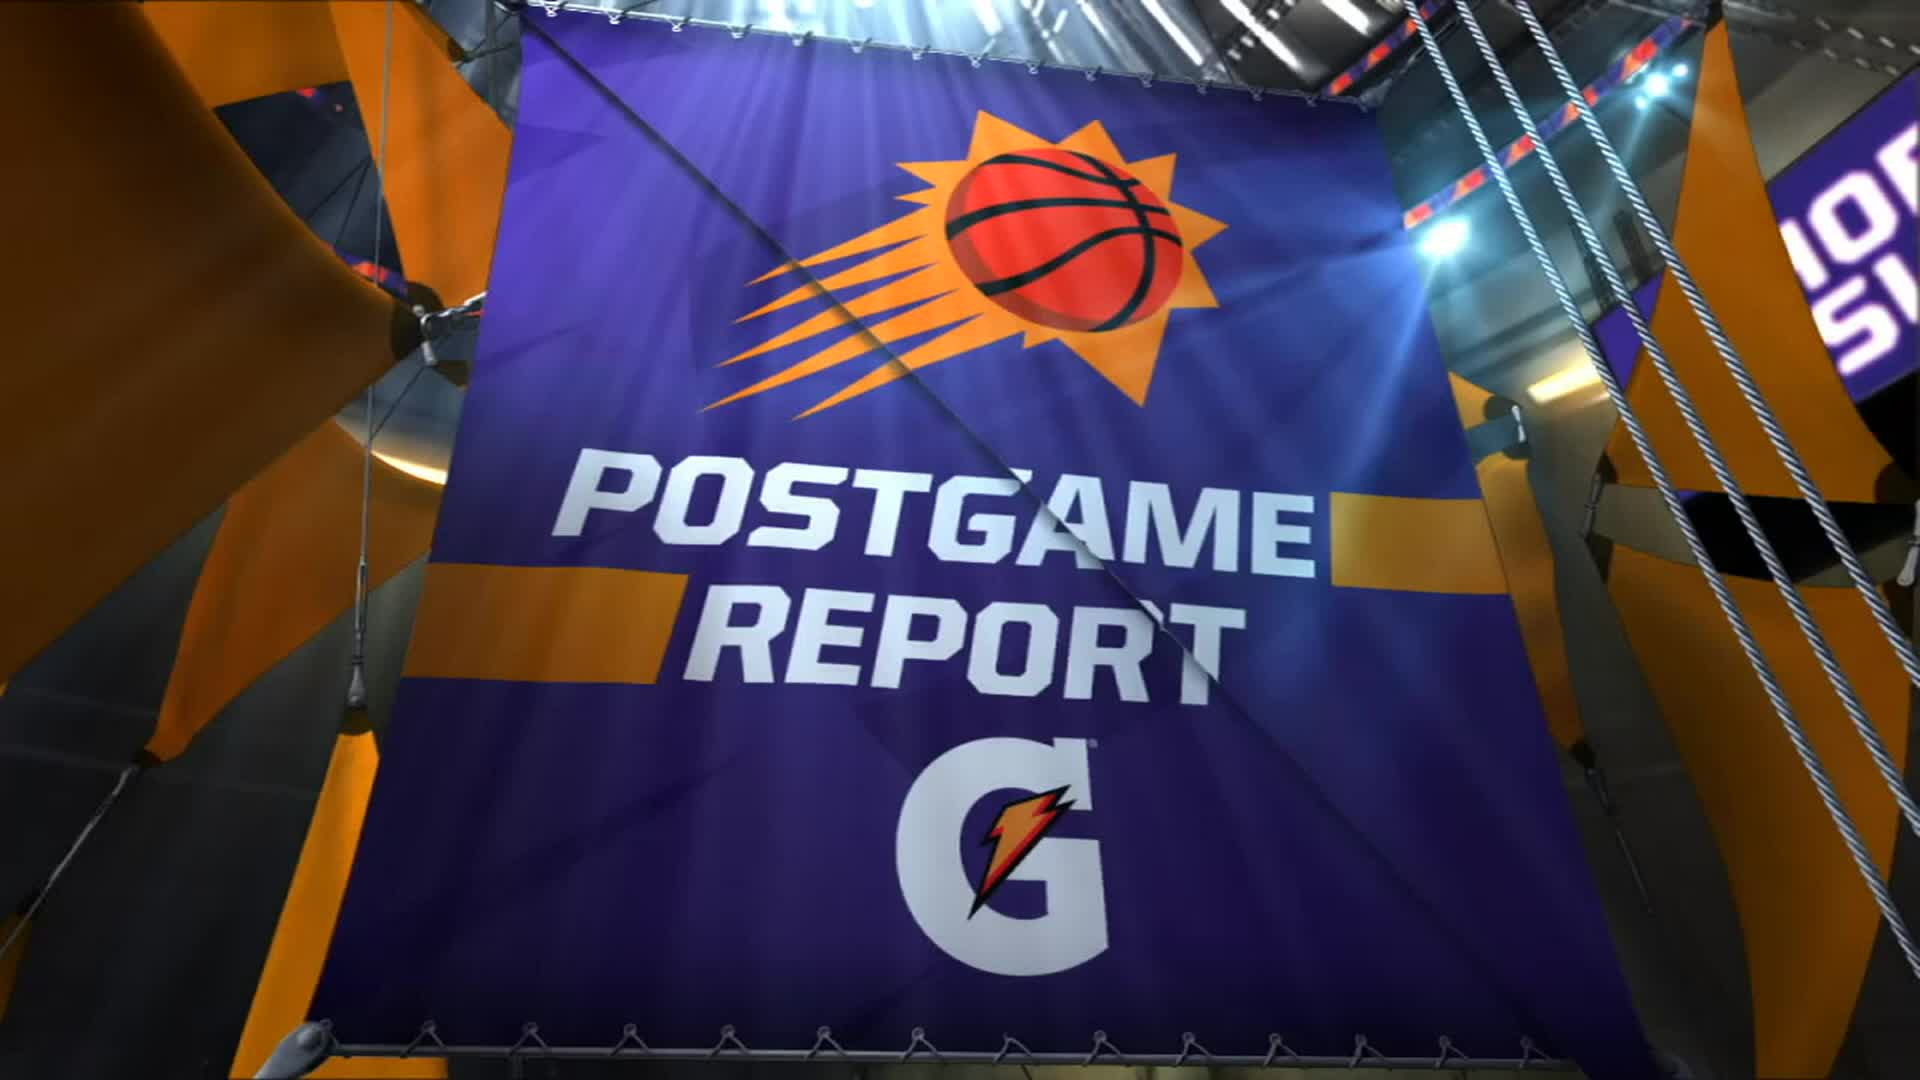 Gatorade Postgame Report: Suns vs. Heat 2020-21